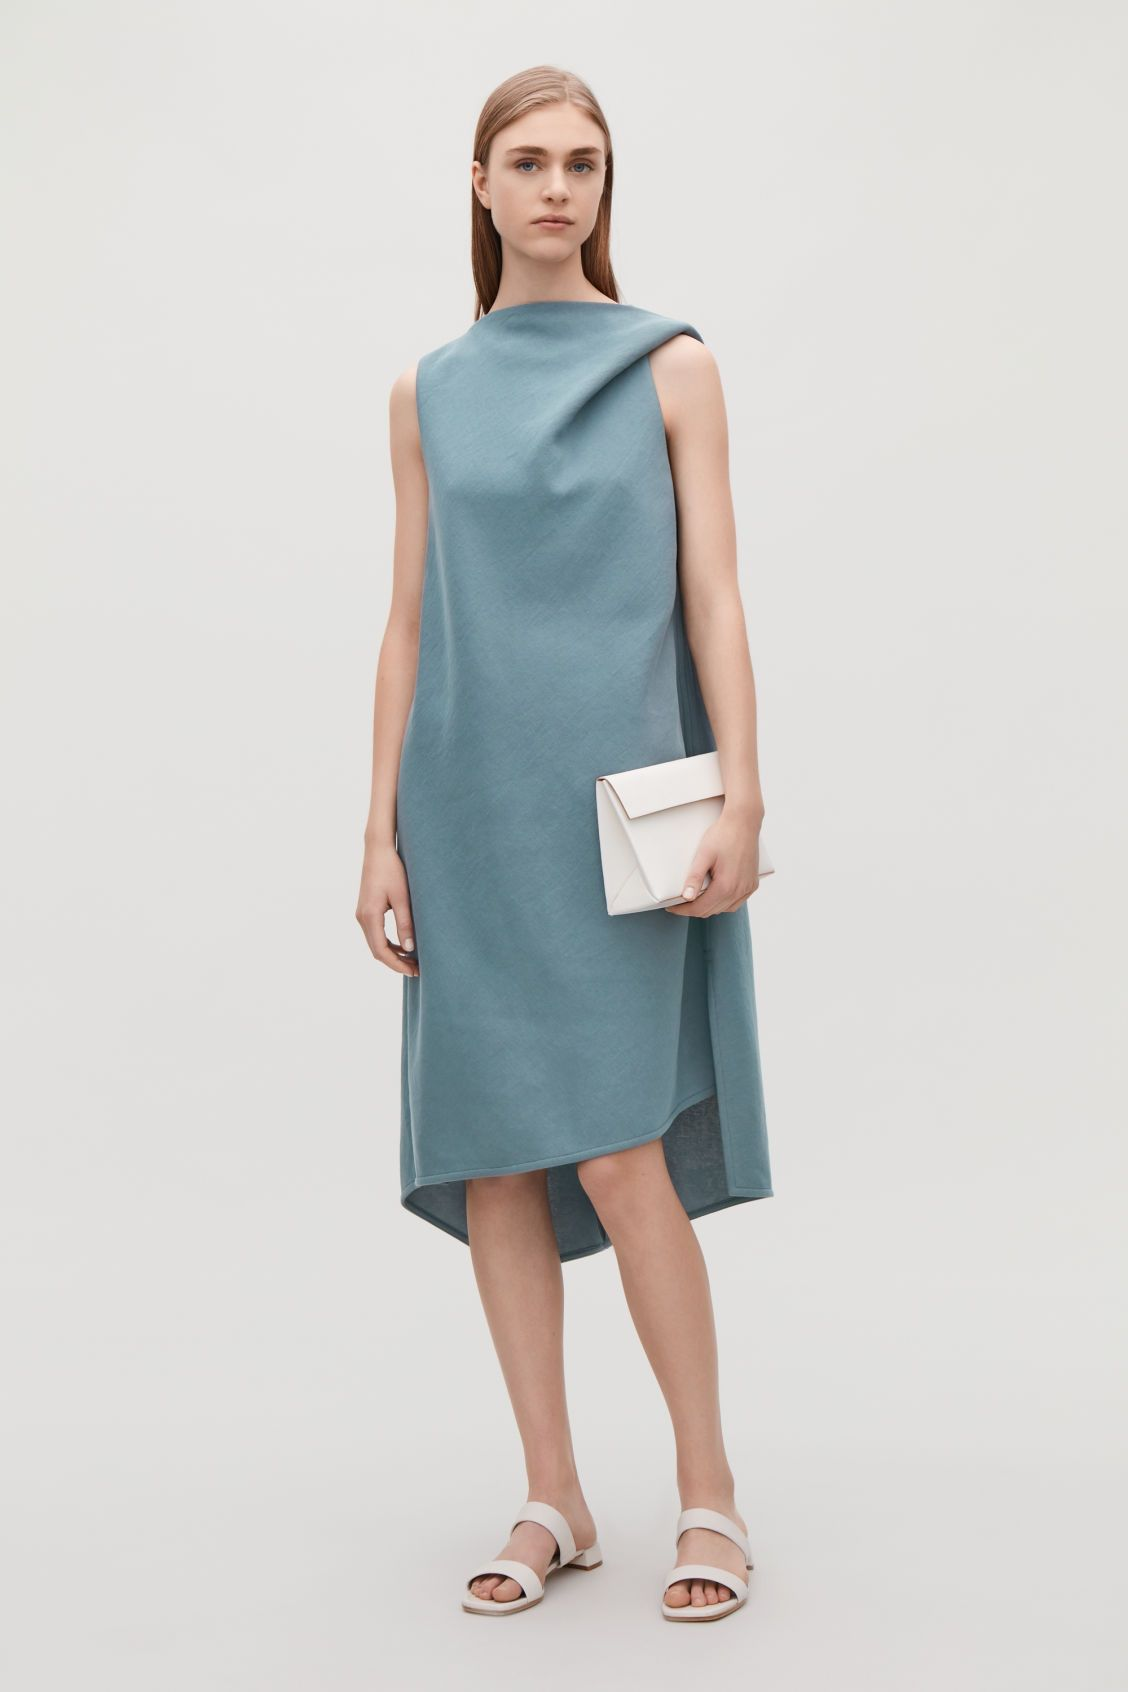 Cos green dress 2018  Model front image of Cos jersey dress with draped shoulders in blue